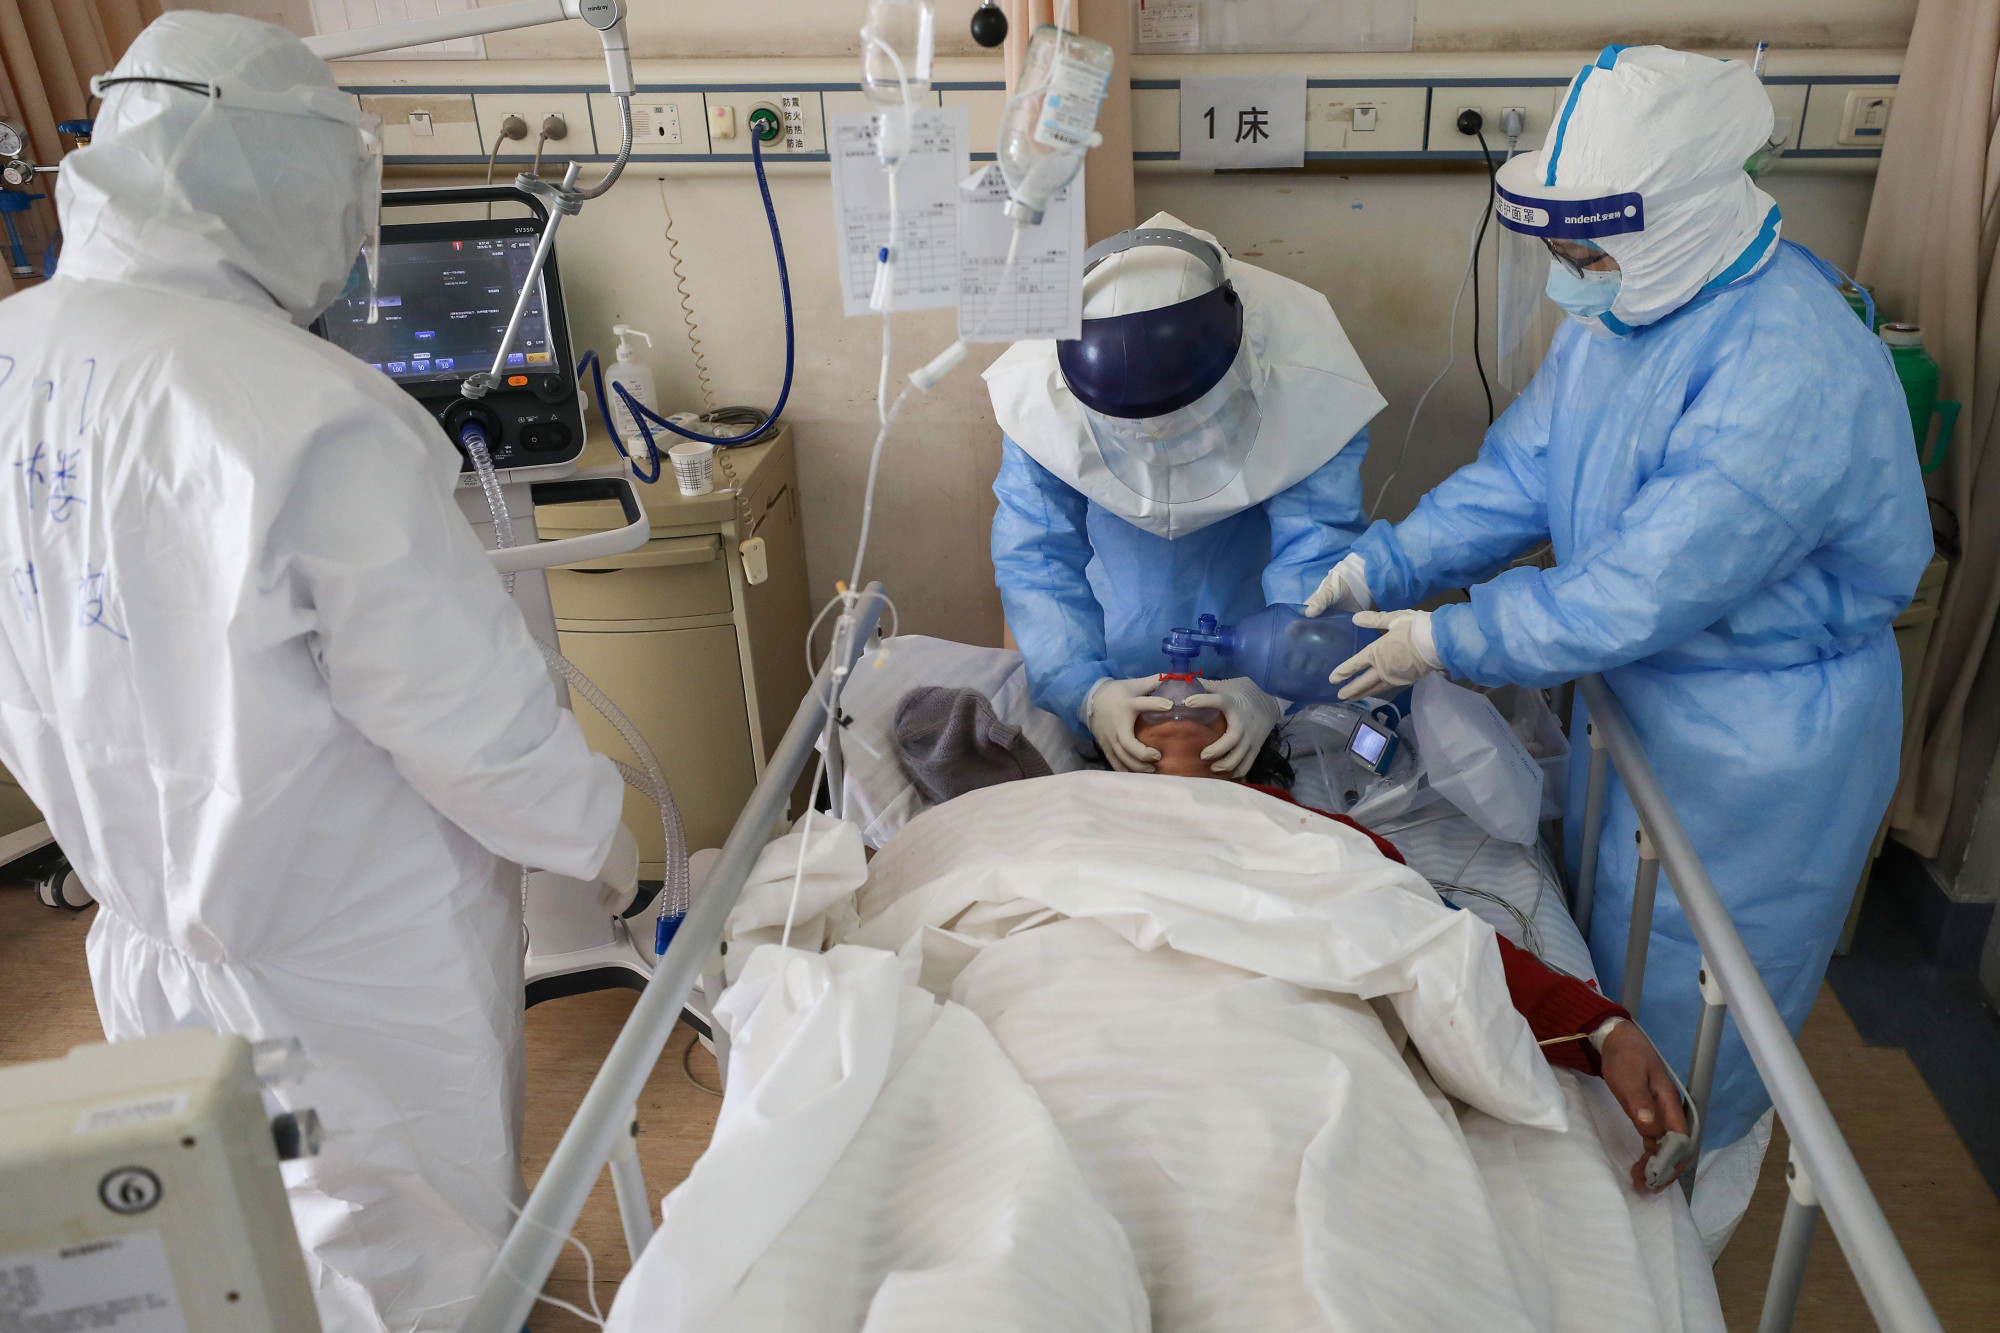 Medical staff members treating a patient